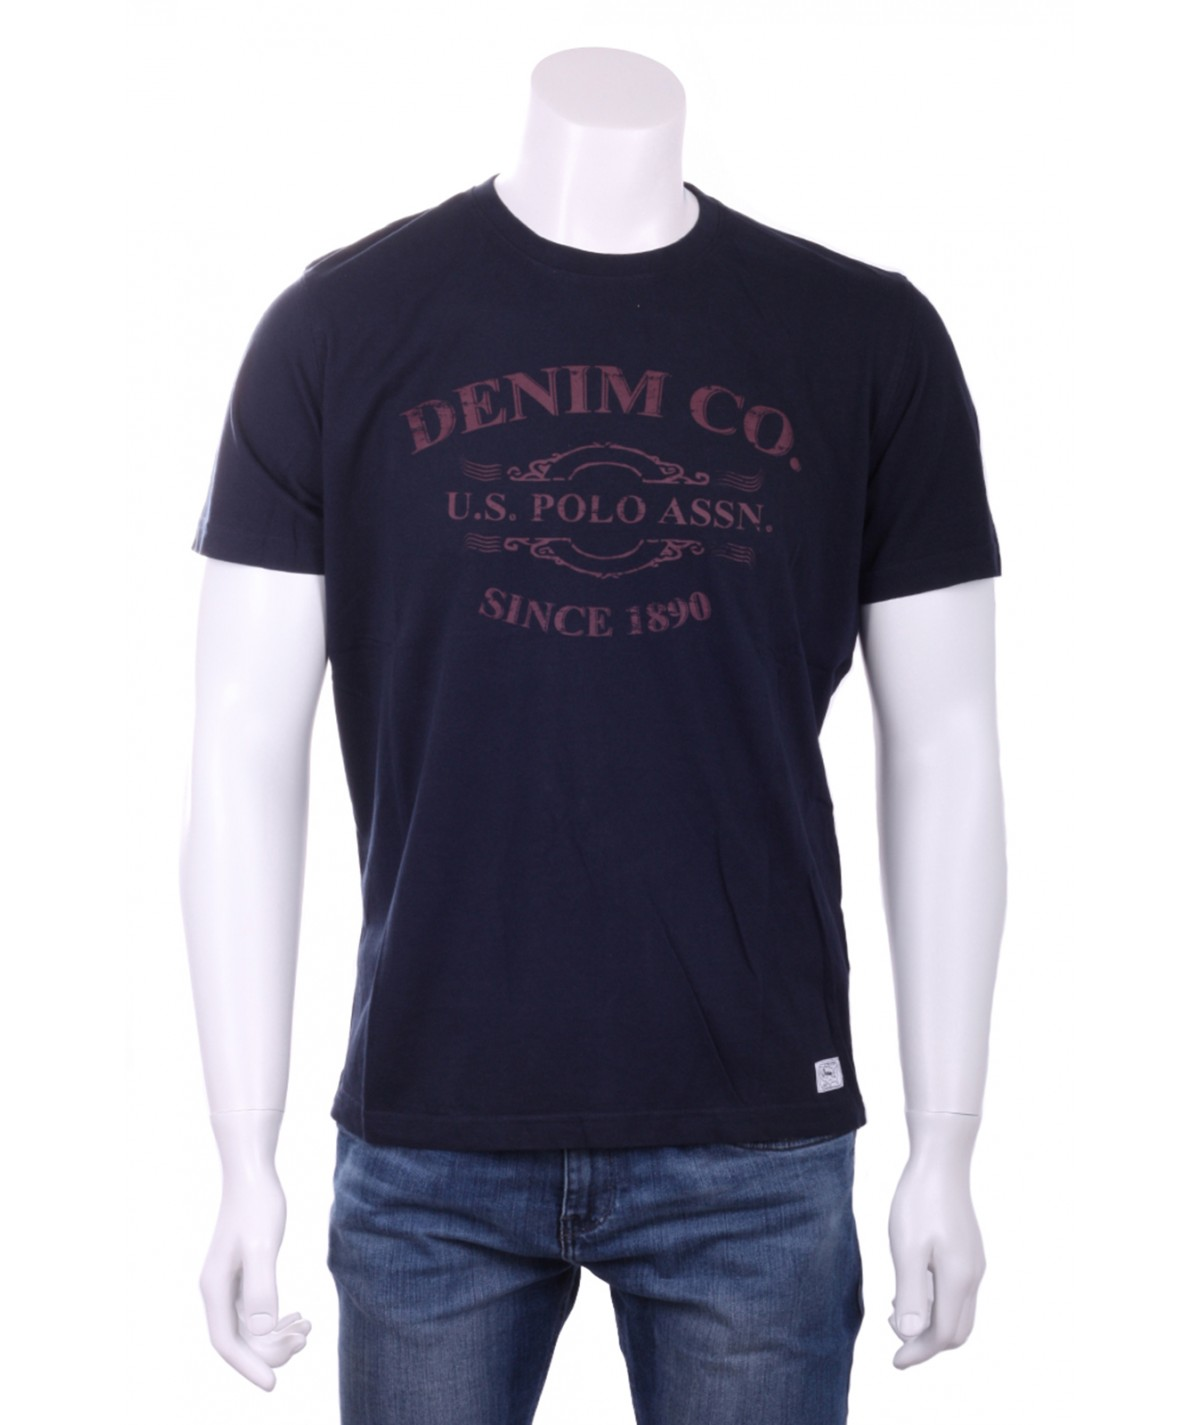 U.S. POLO ASSN. T-Shirt Uomo